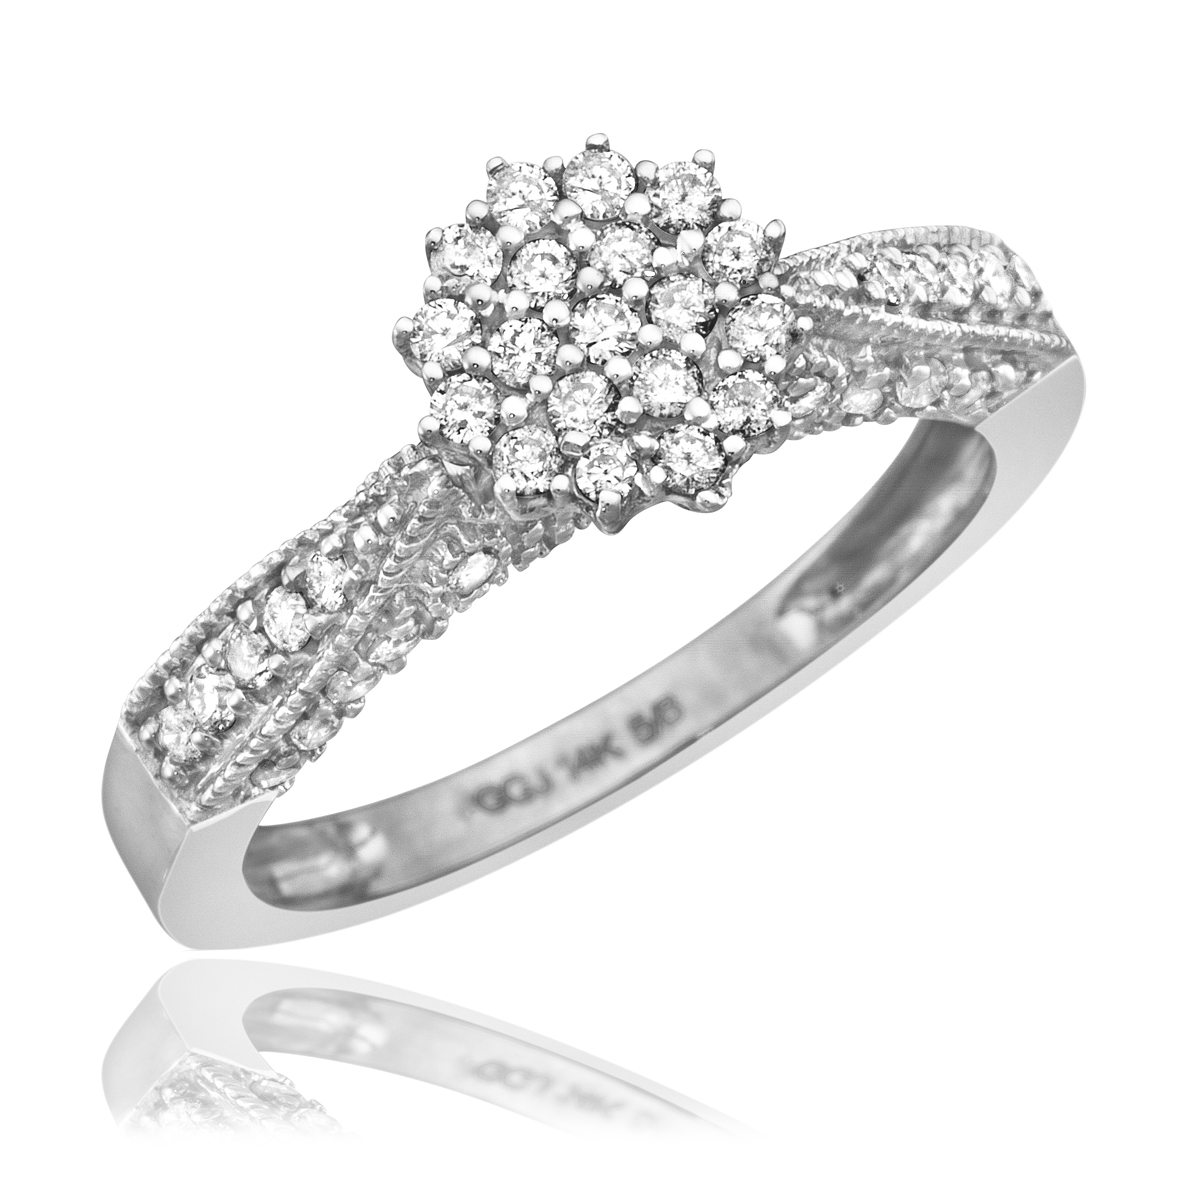 3 piece wedding ring sets for her walmart wedding ring sets Jewelersclub 1 20 Carat T W White Diamond Gold Over Silver Trio Engagement Ring Set Walmart Com